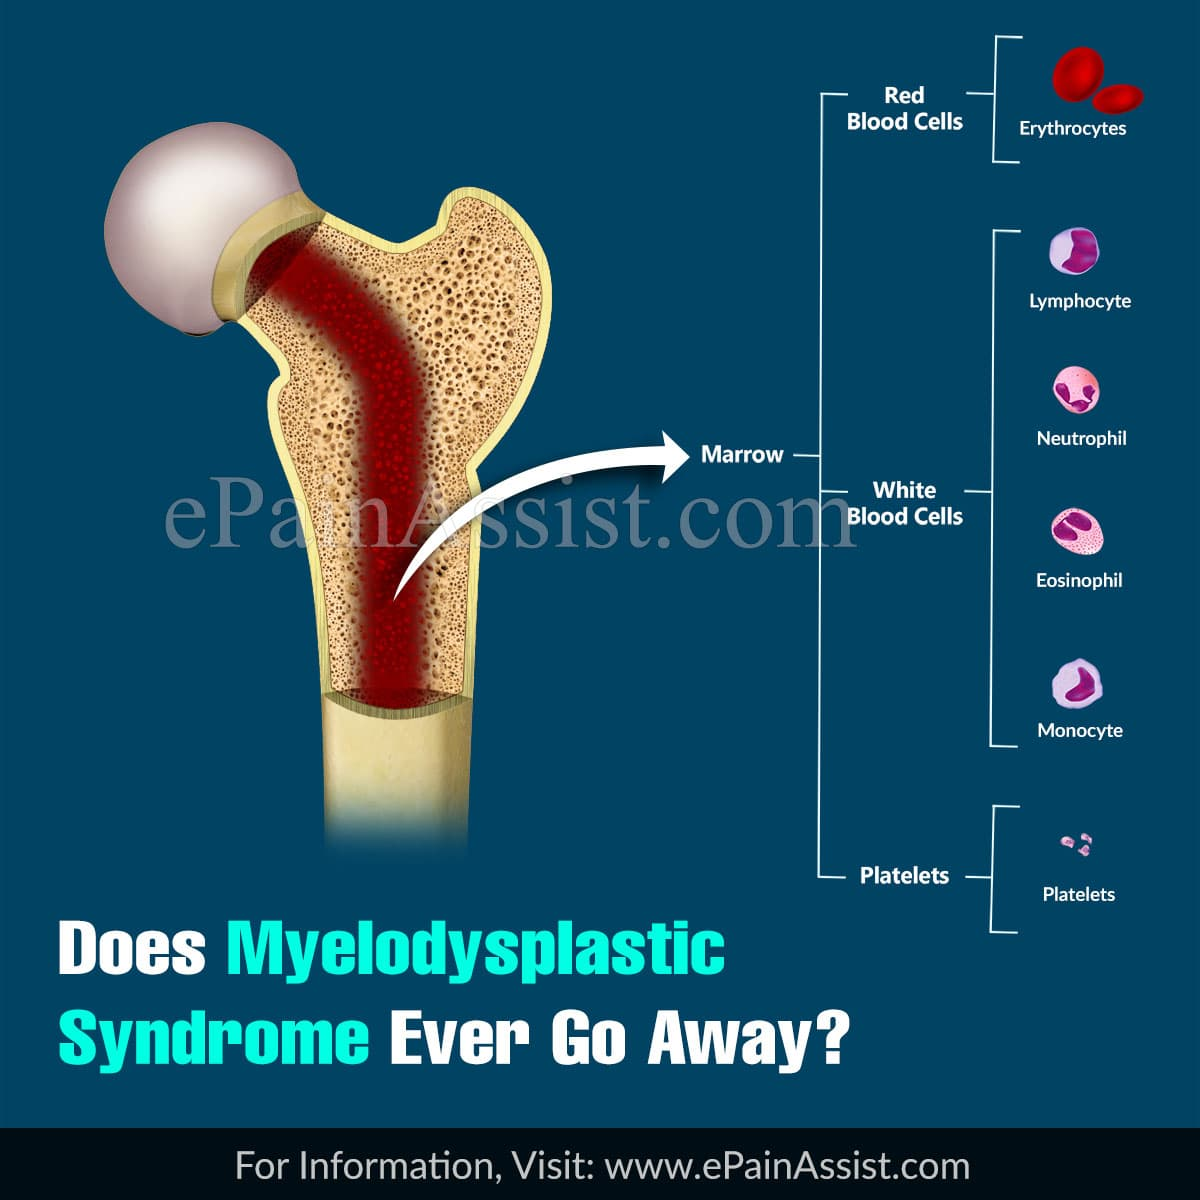 Does Myelodysplastic Syndrome Ever Go Away?